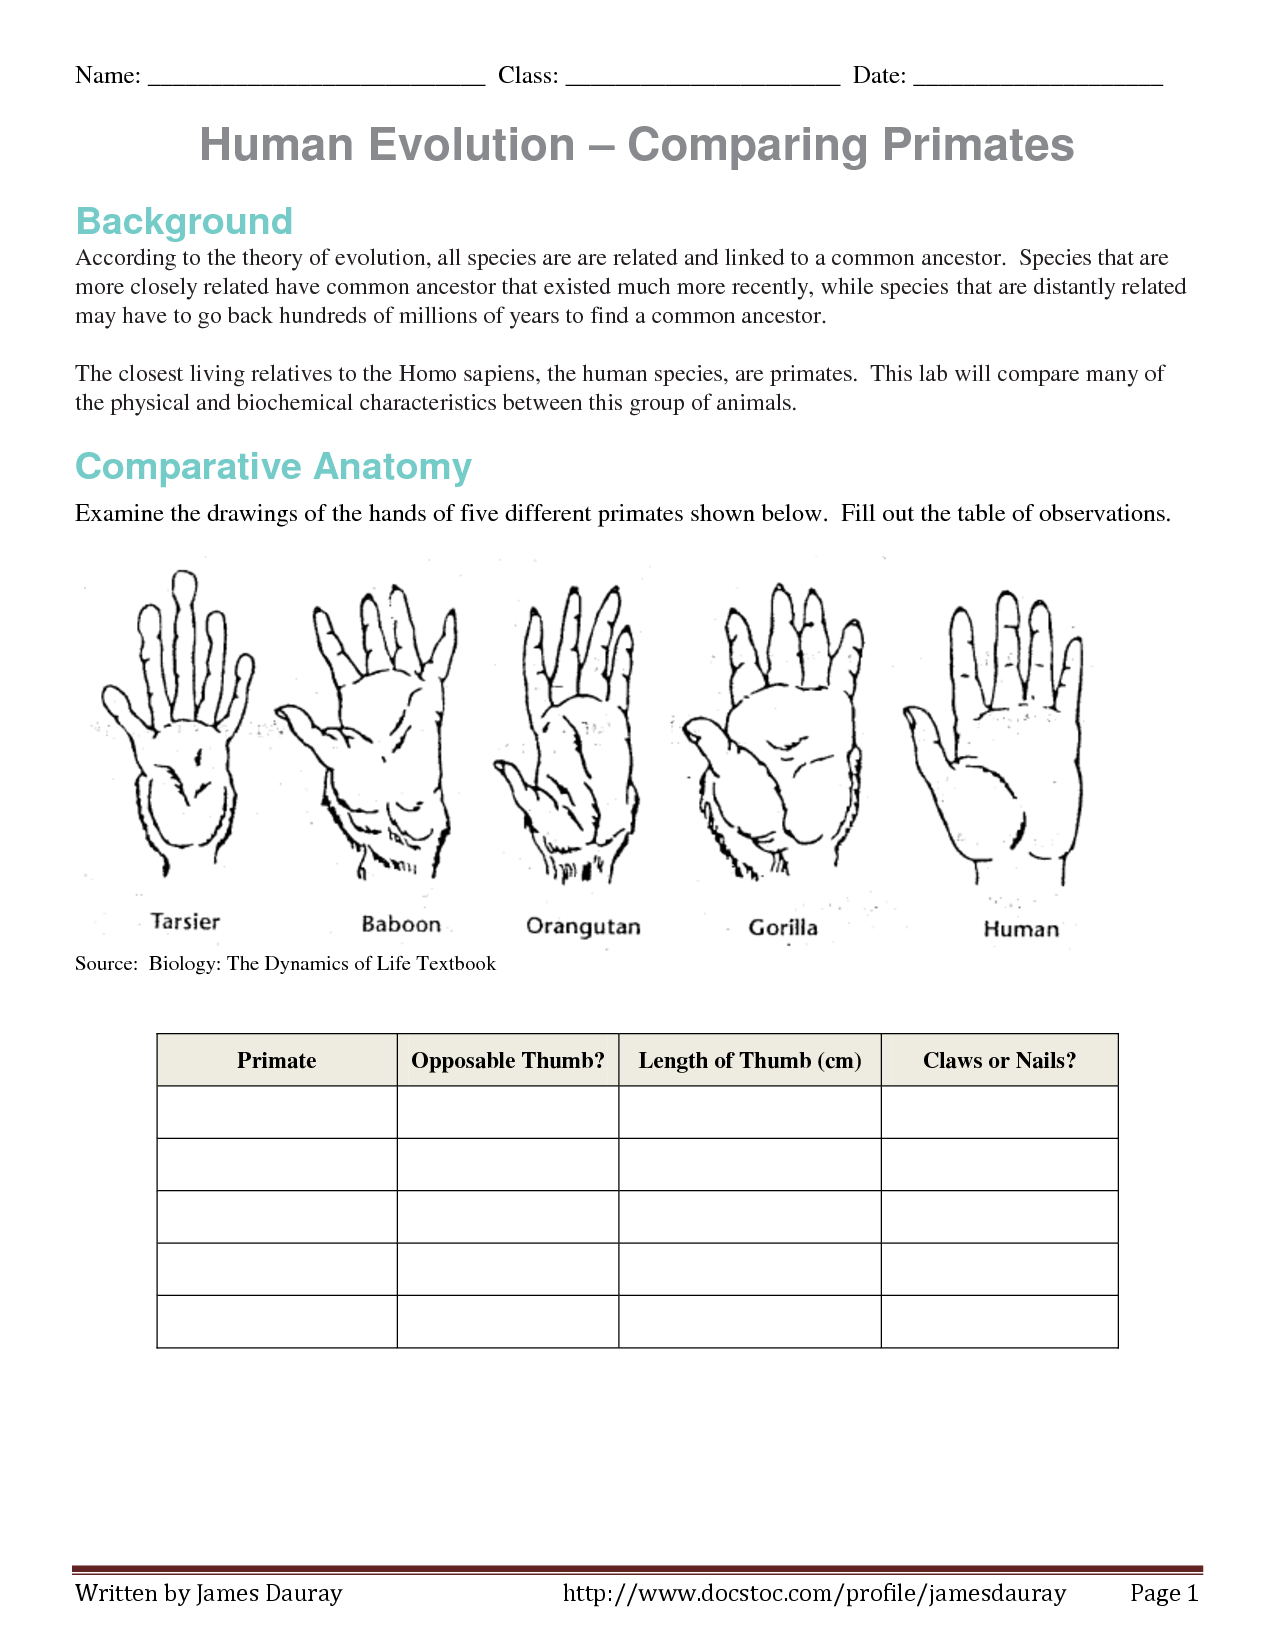 Evolution Of Human Thumb Evidence Of Human Evolution Worksheet